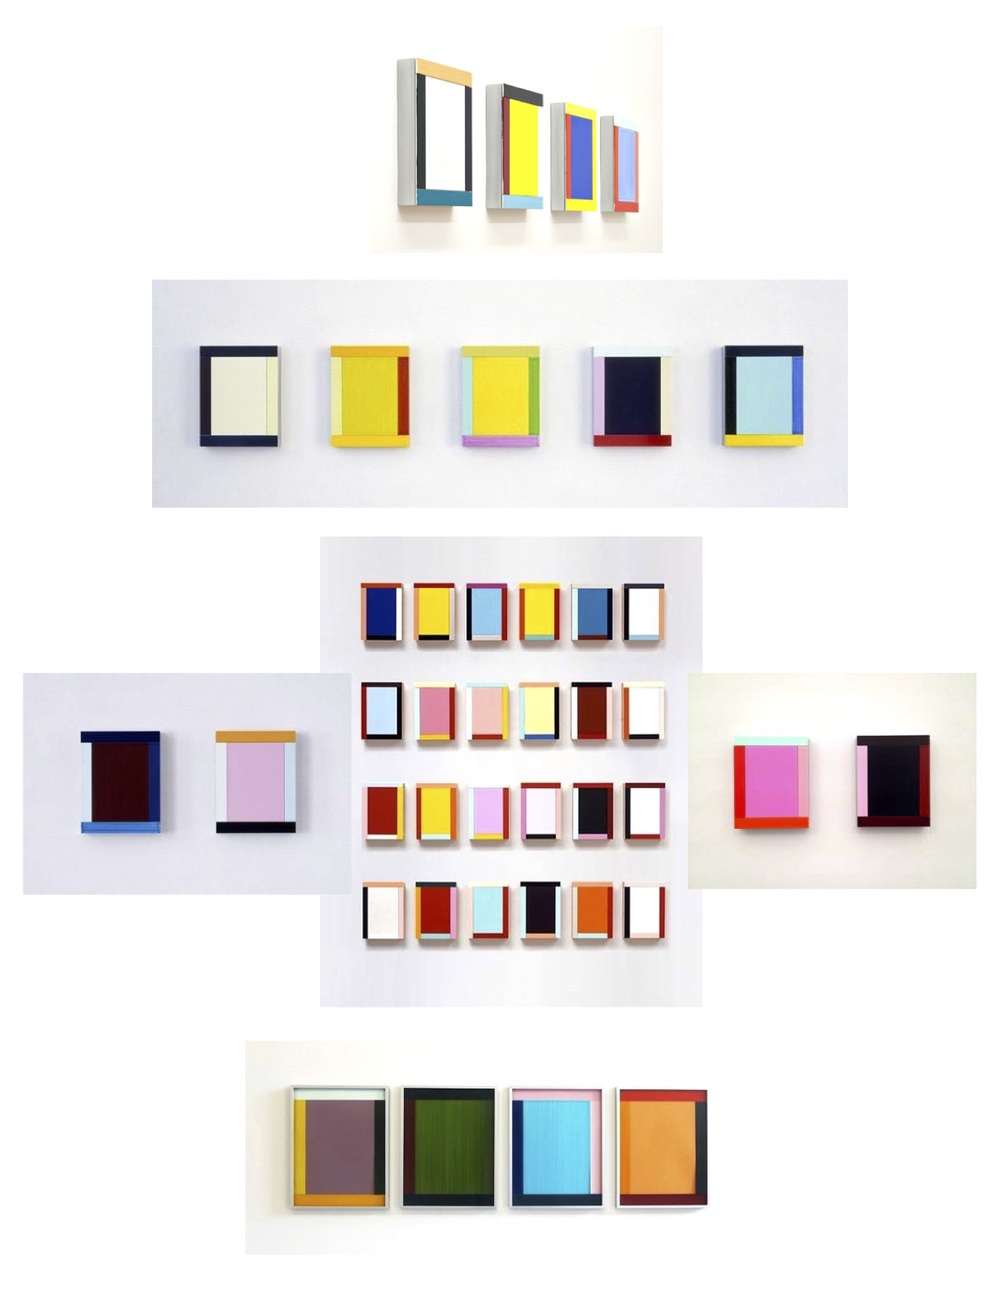 More formalized 'Frame' compositions again play with color theory spanning deep, bright andpastel hues.